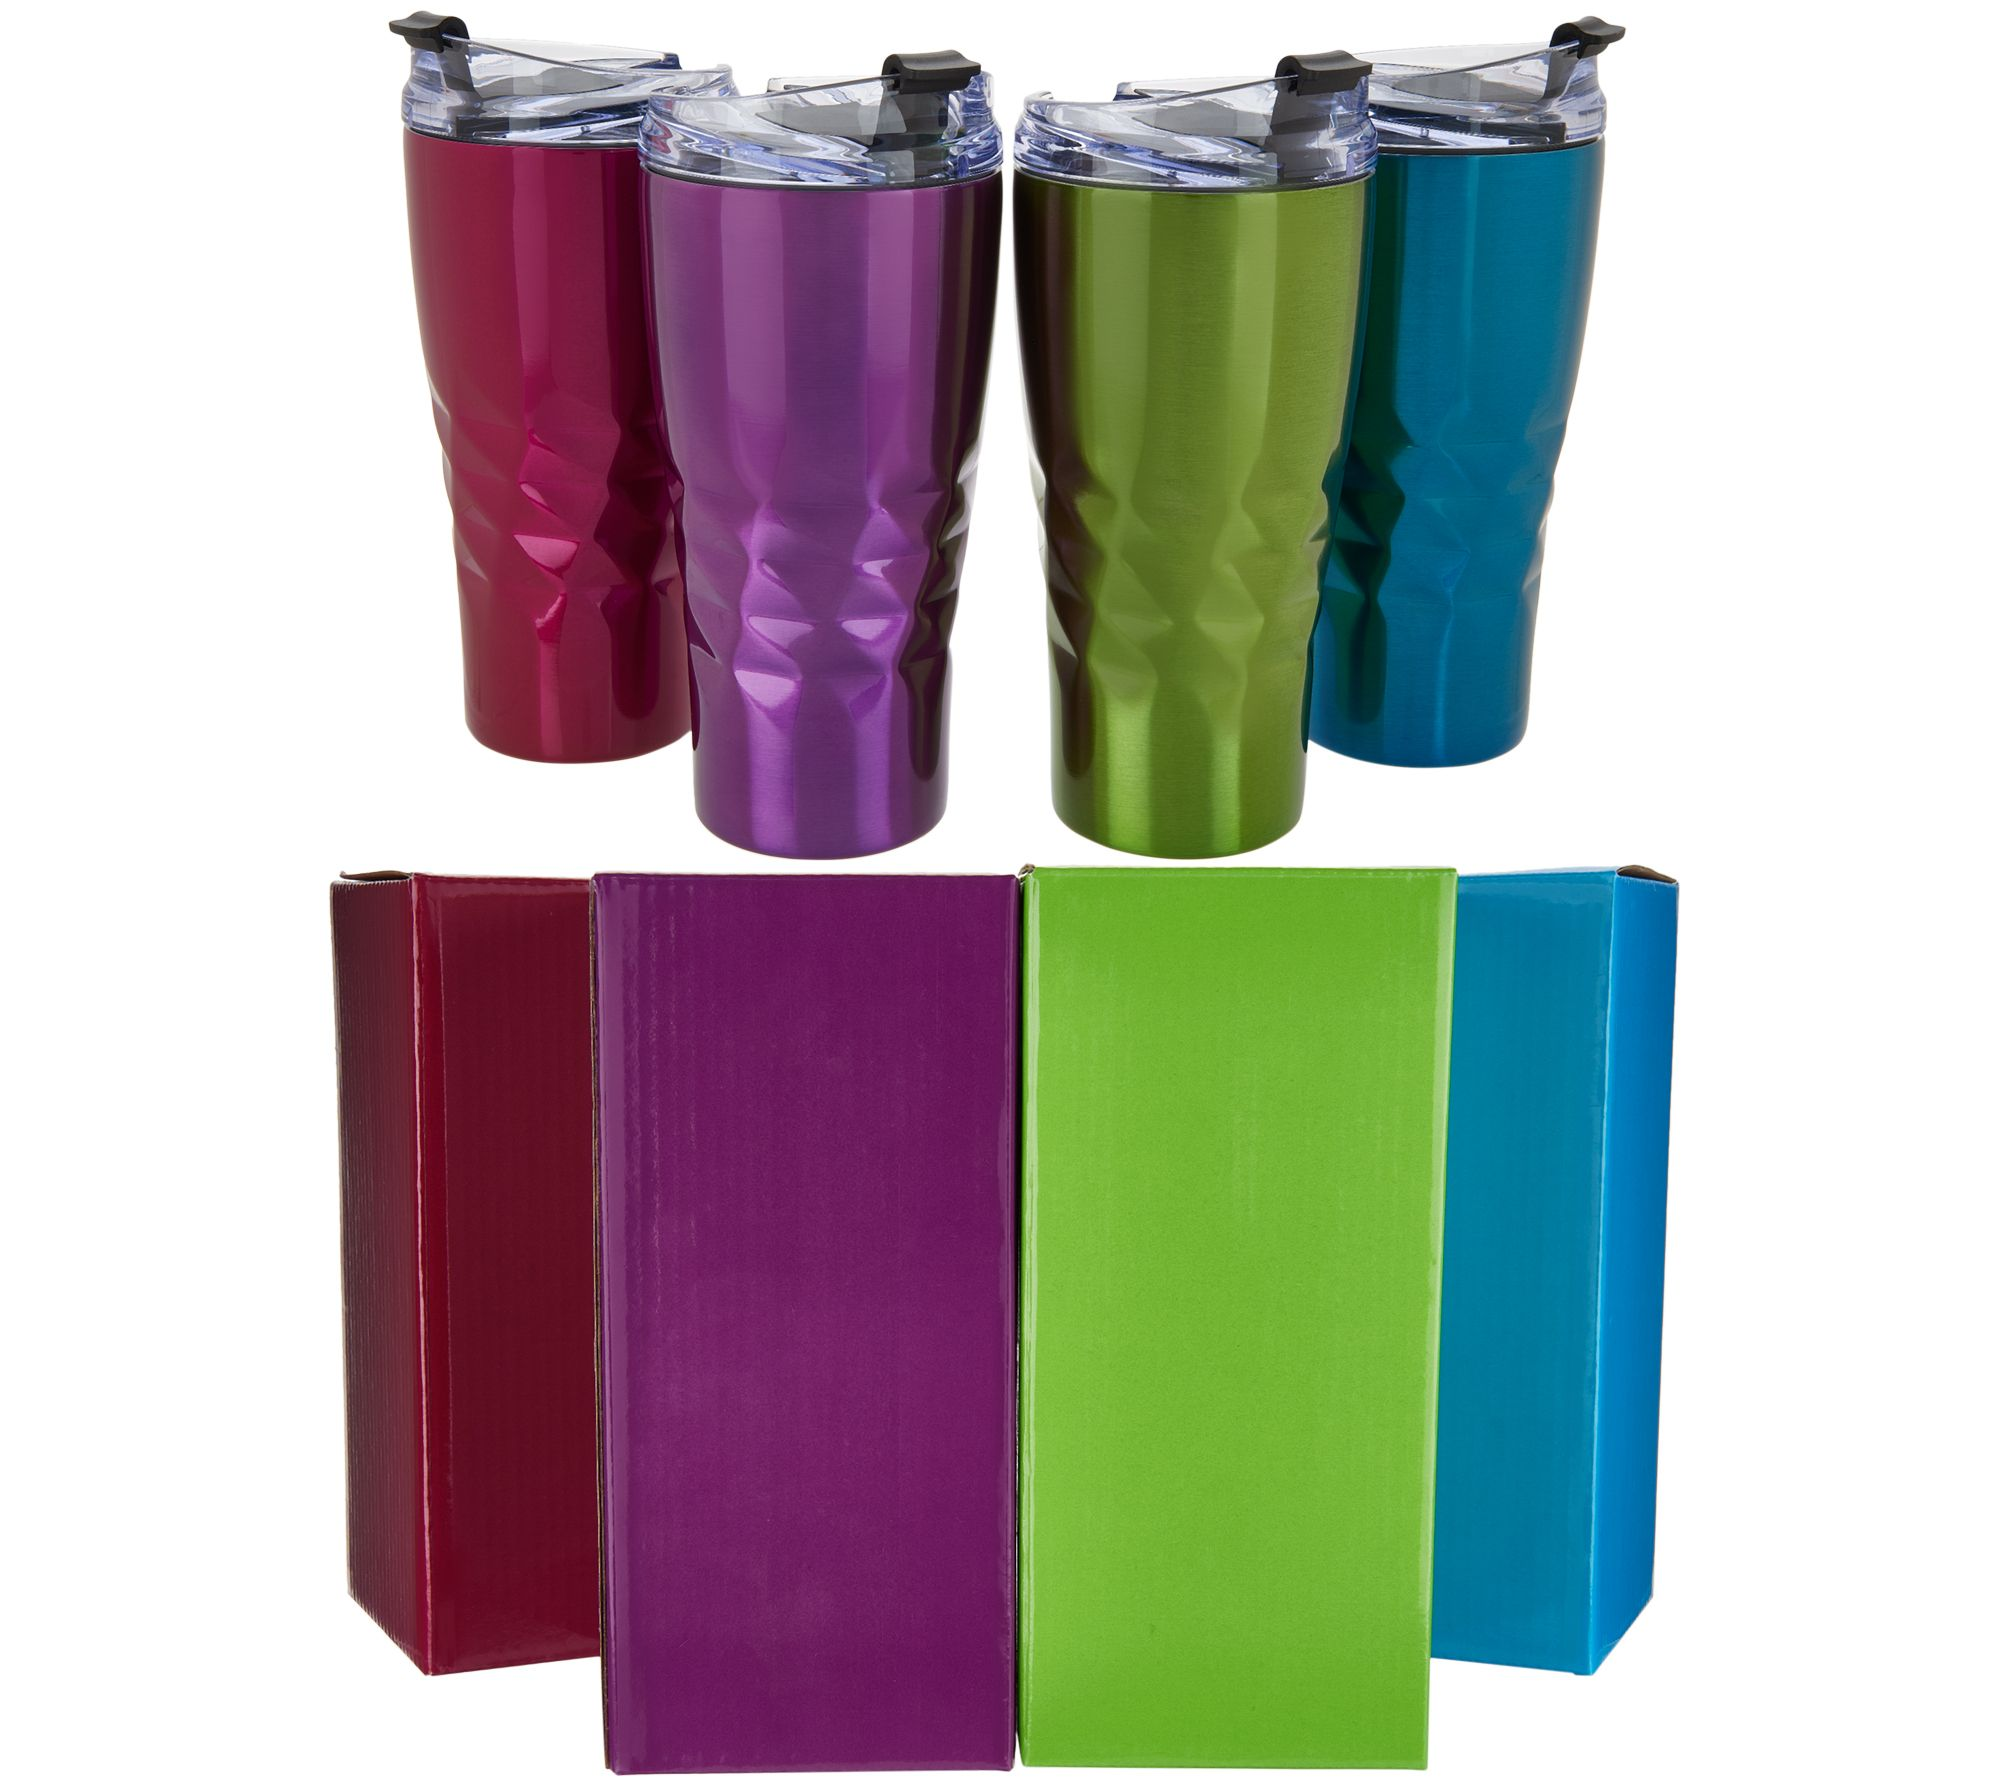 0861f1c5488 Primula Peak Set of 4 20-oz Insulated Tumblers with Gift Boxes - Page 1 —  QVC.com